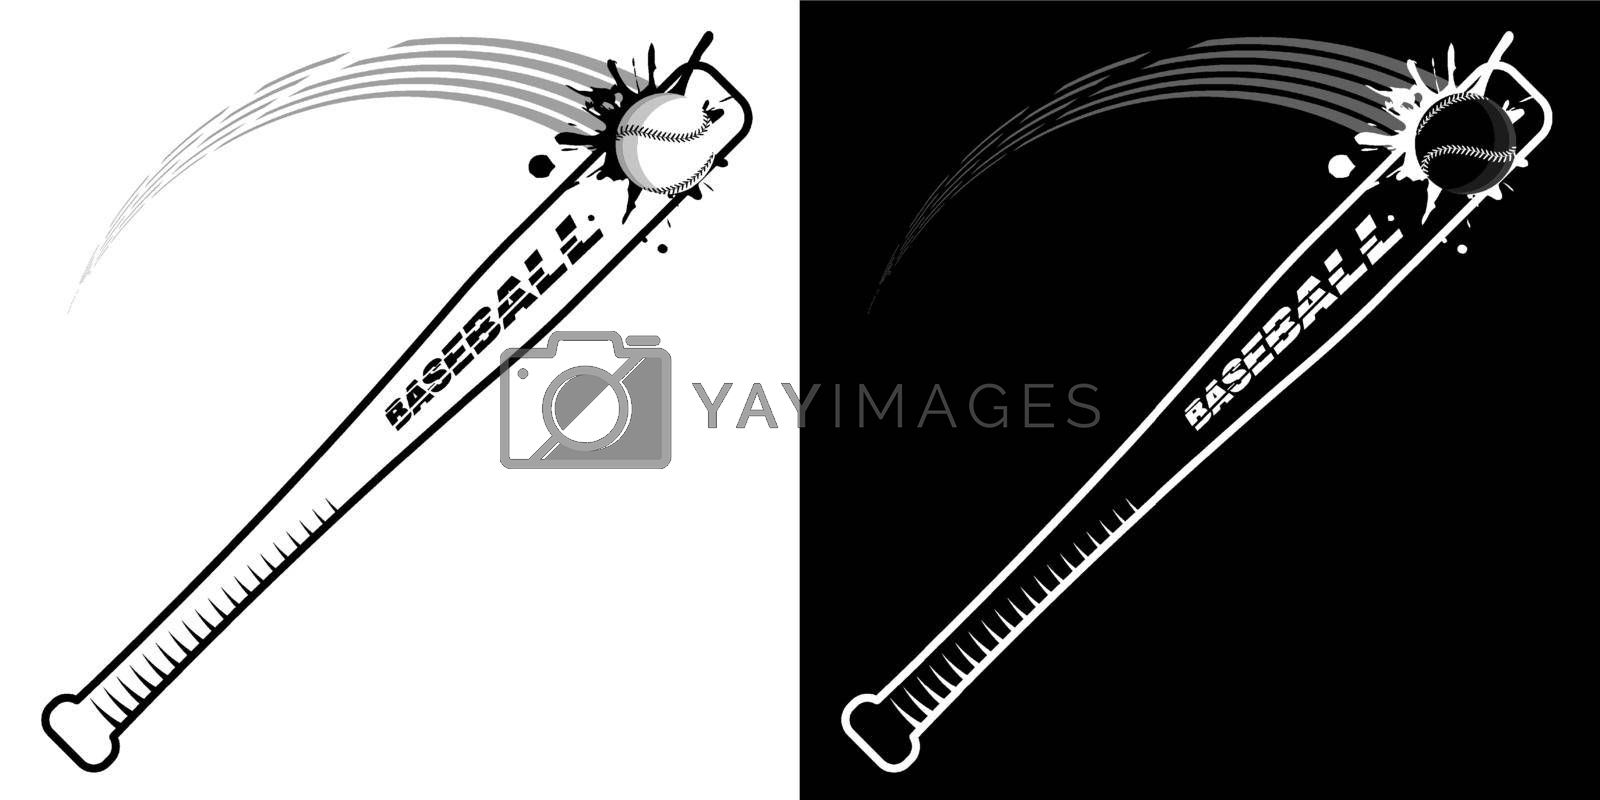 sports wooden baseball bat powerfully with splashes hits flying ball. American national sport. Active lifestyle. Vector